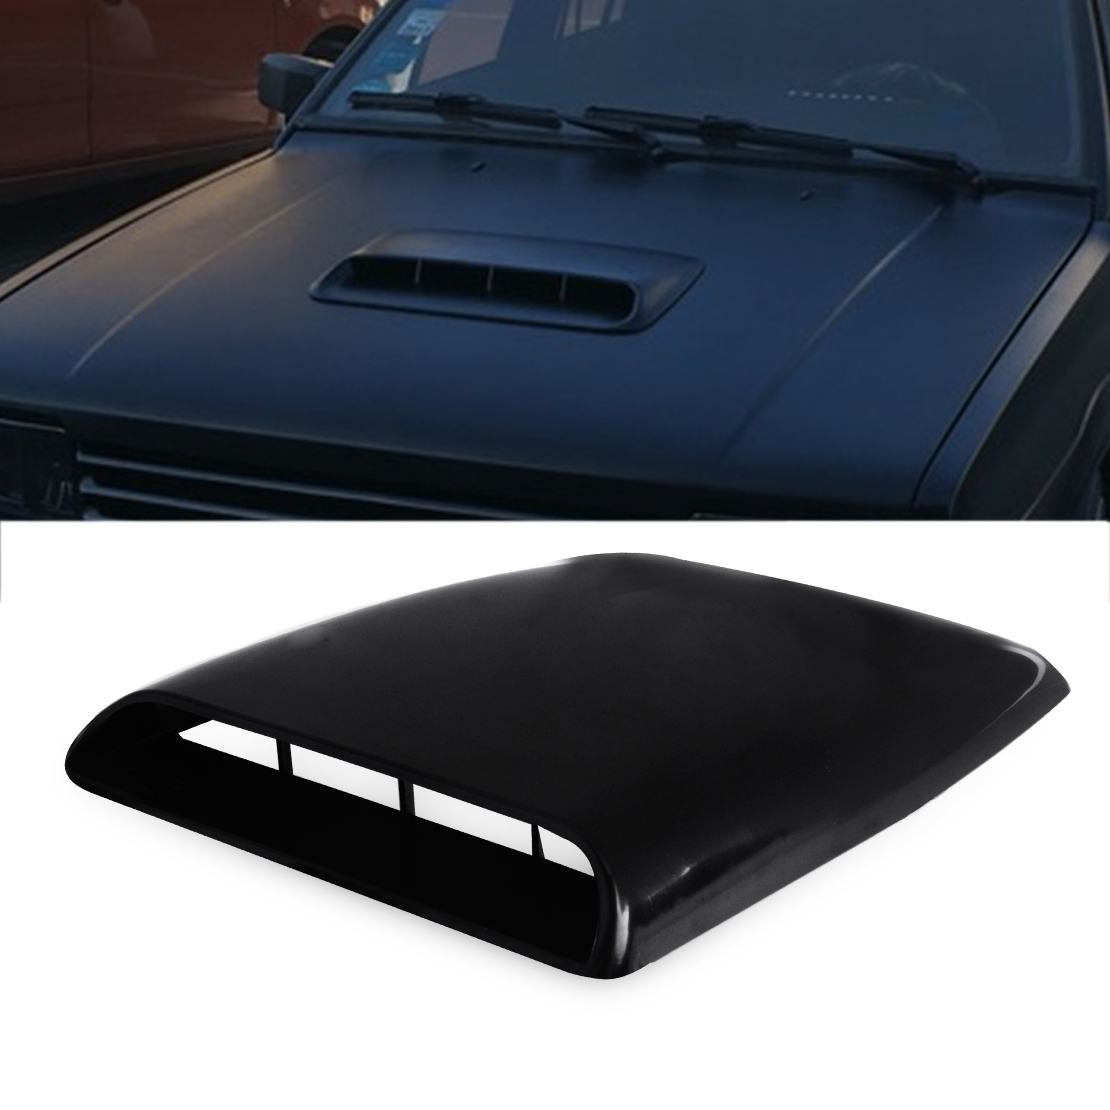 Air Flows Intake Scoop Universal Car Decorative Air Flows Intake Scoop Bonnet Vent Sticker Cover Hood black Bonnet Vent Cover